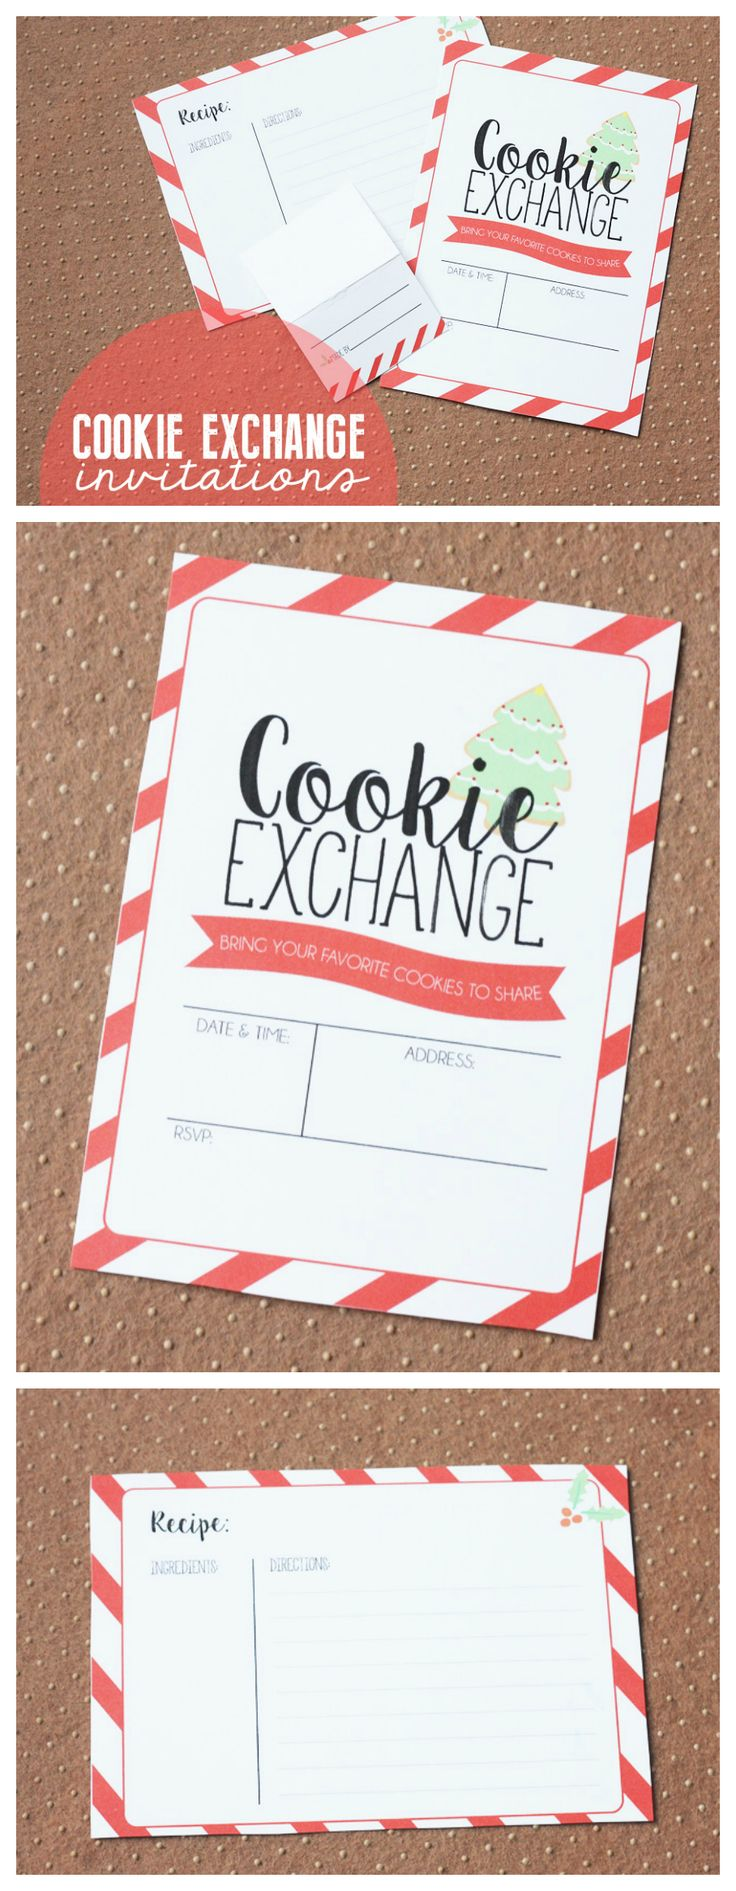 Cookie Exchange Invitation | Cookie Exchange Party Ideas